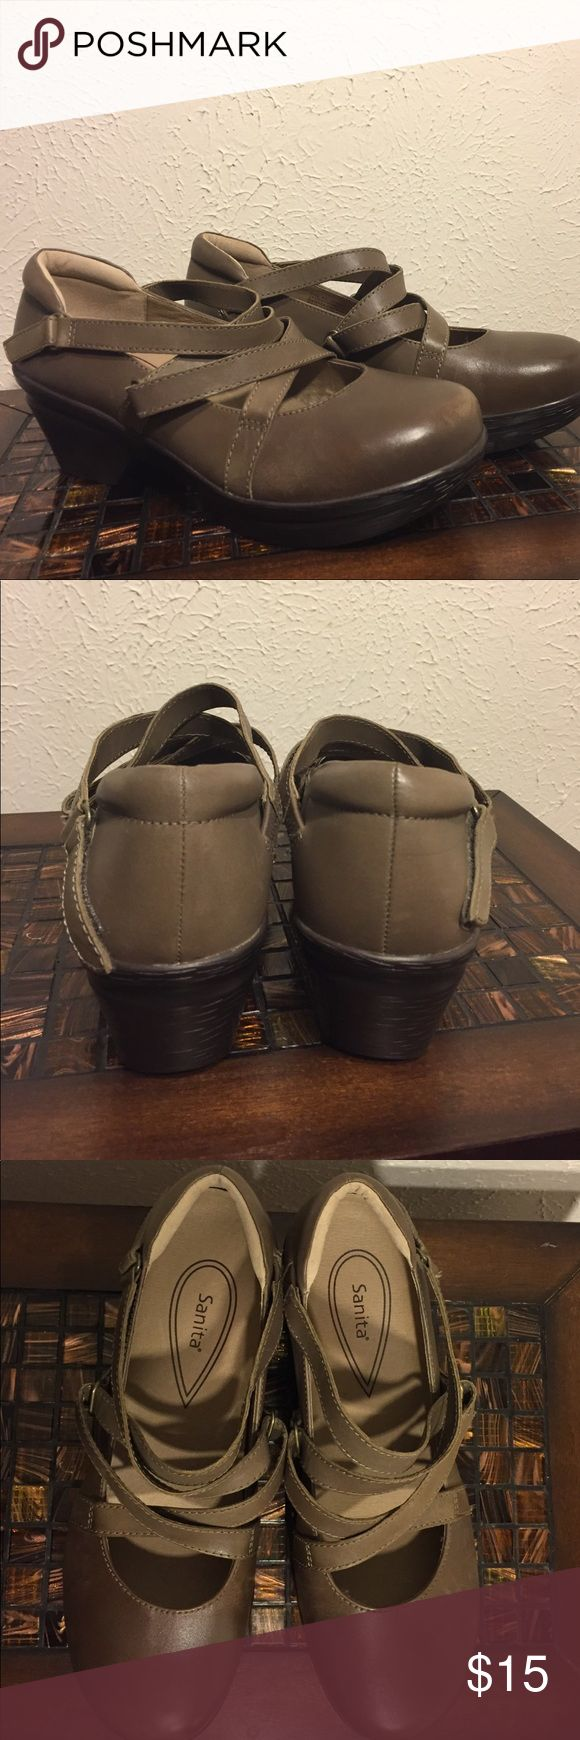 Taupe Sanita Clog like new! No toe prints! Sanita is known for having comfortable shoes! These are barely worn as they have no real wear on bottoms and have no toe prints. Some defect on right toe of shoe. Polish could fix it! Sanita Shoes Mules & Clogs